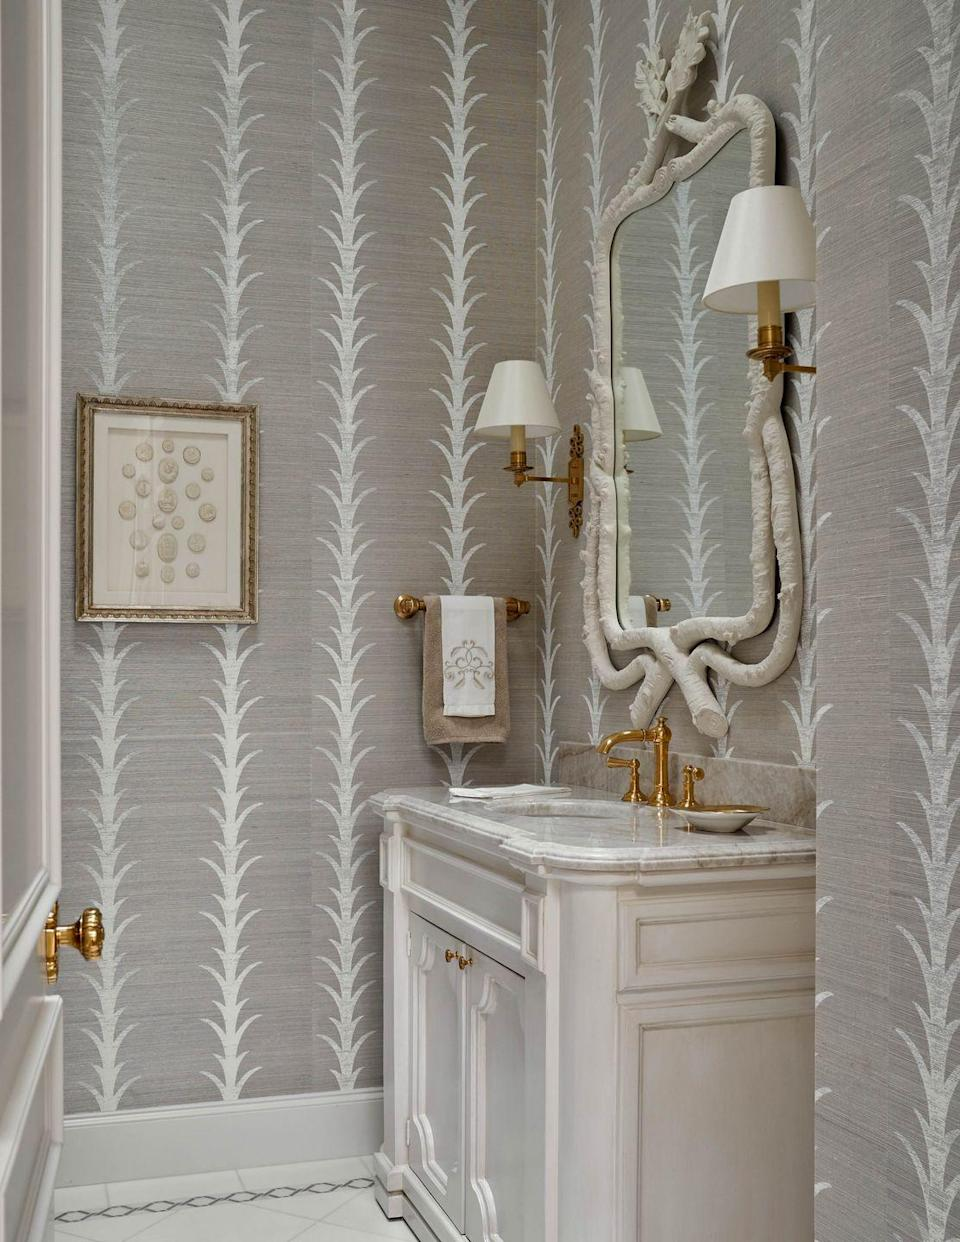 <p><em>There are also a lot of patterned grasscloths out there, which I love in a powder room. It makes for a cozy and interesting little jewel box. </em></p><p><br>Josh Pickering</p>